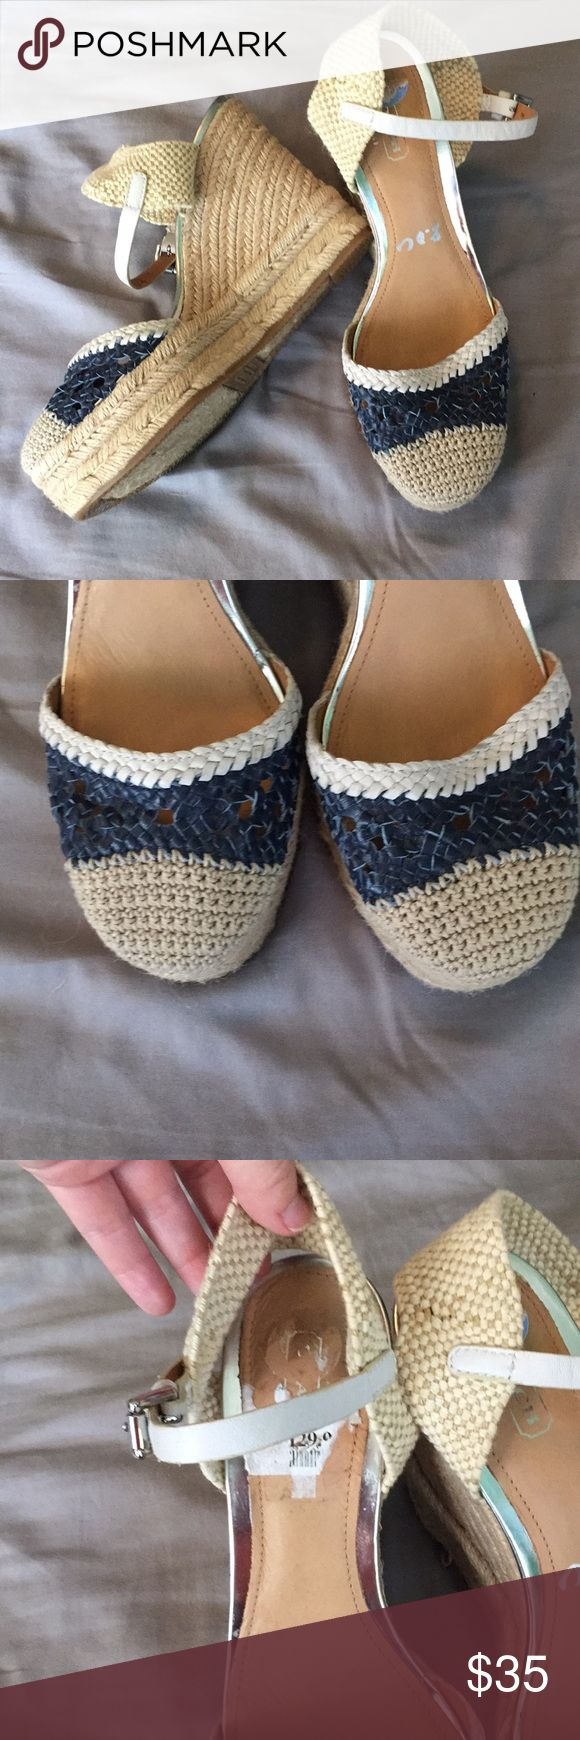 NWT Coach Espadrilles Nautical ⚓️ 7.5 7.5 new with the Tj max sticker still on them. These are so cute and go with so many things! Coach Shoes Wedges